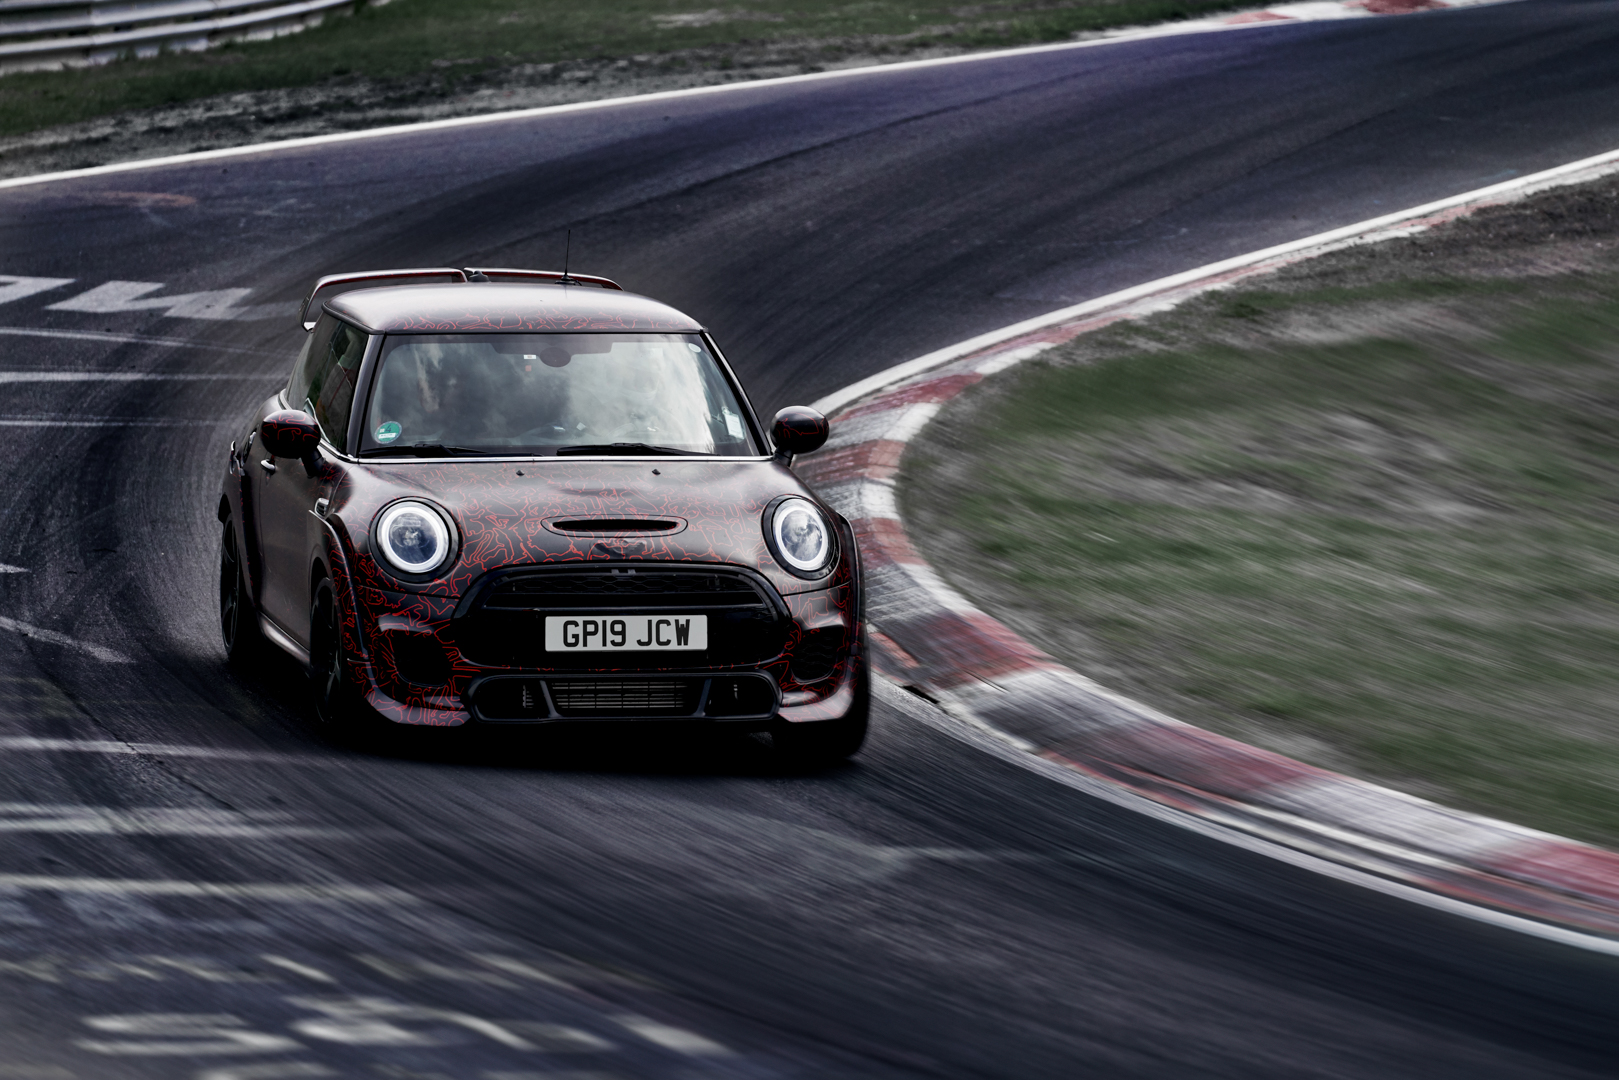 MINI JCW GP F56 laps the Nordschleife in 7:56:69 minutes